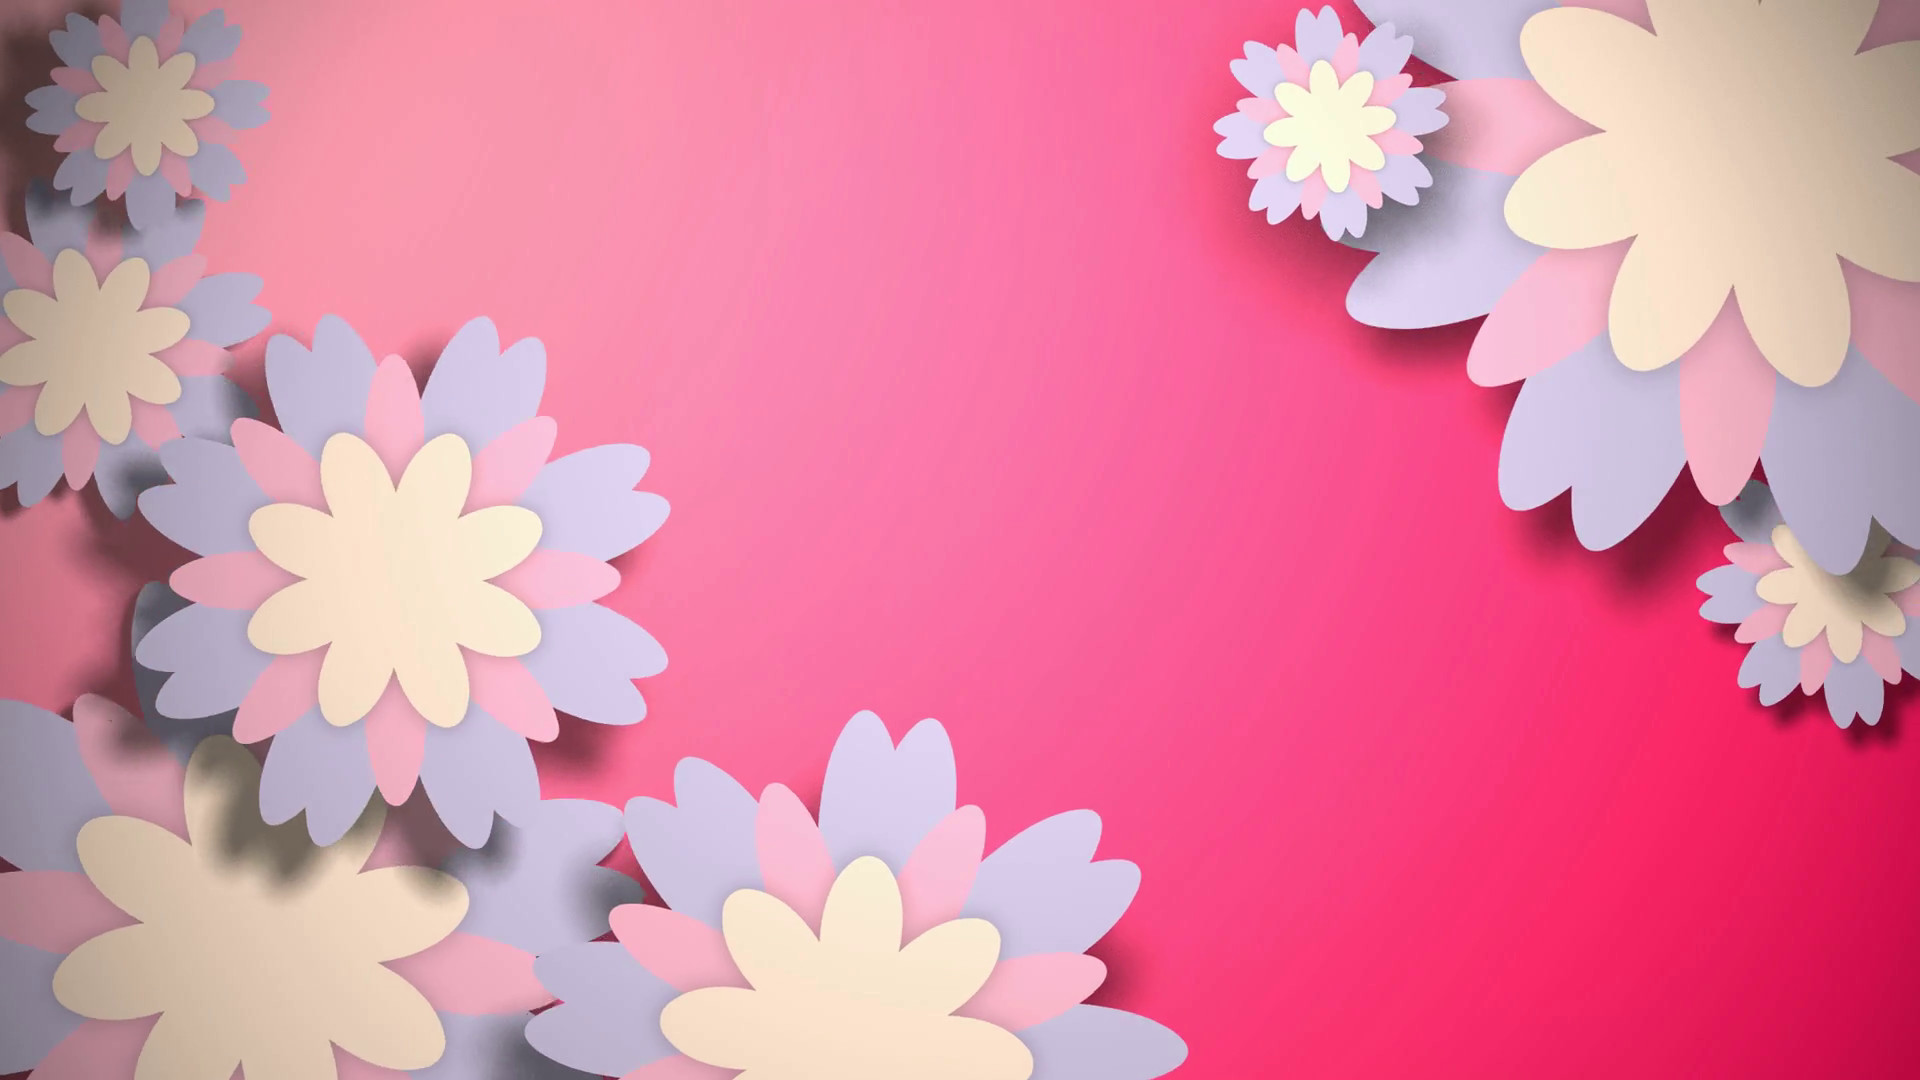 Res: 1920x1080, Animated wallpaper with pastel color flowers on pink background. Motion  Background - Storyblocks Video